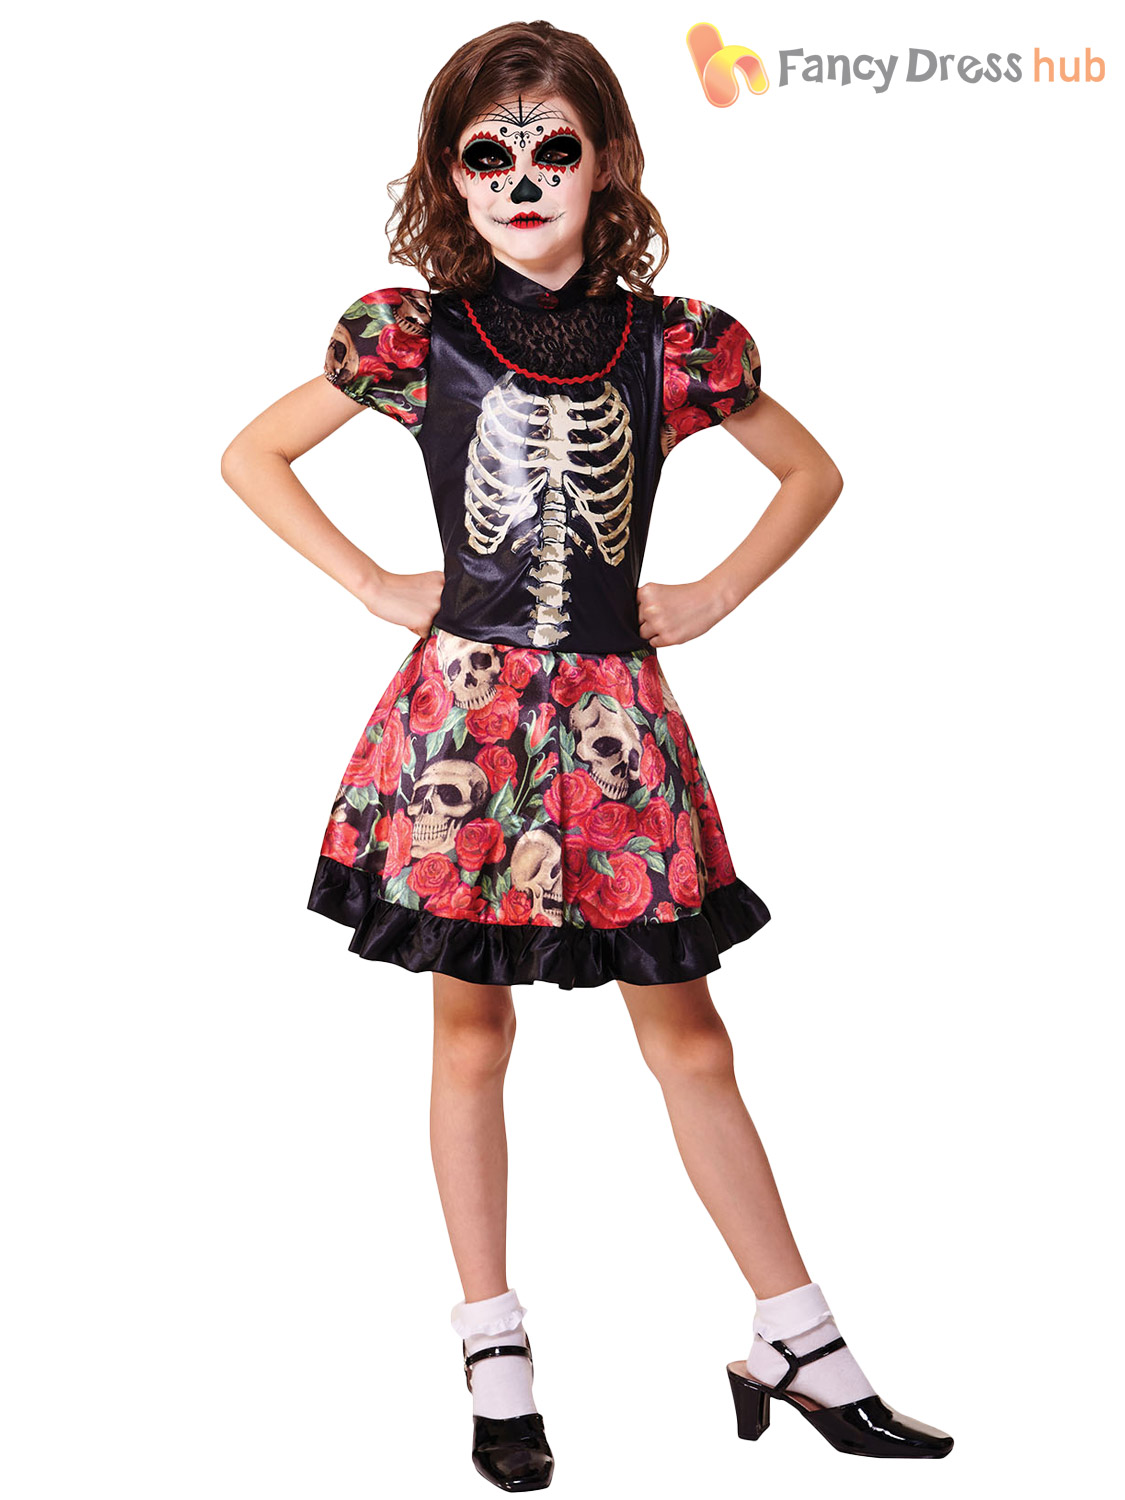 Skeleton Child Skin Suit – Clash of Clans skeleton bomber costume? Find this Pin and more on Costumes by Bridget Snodgrass. Skeleton Child Skin Suit - Let your youngster be a creepy bag of bones on Halloween when they wear the Skeleton Child Skin Suit.